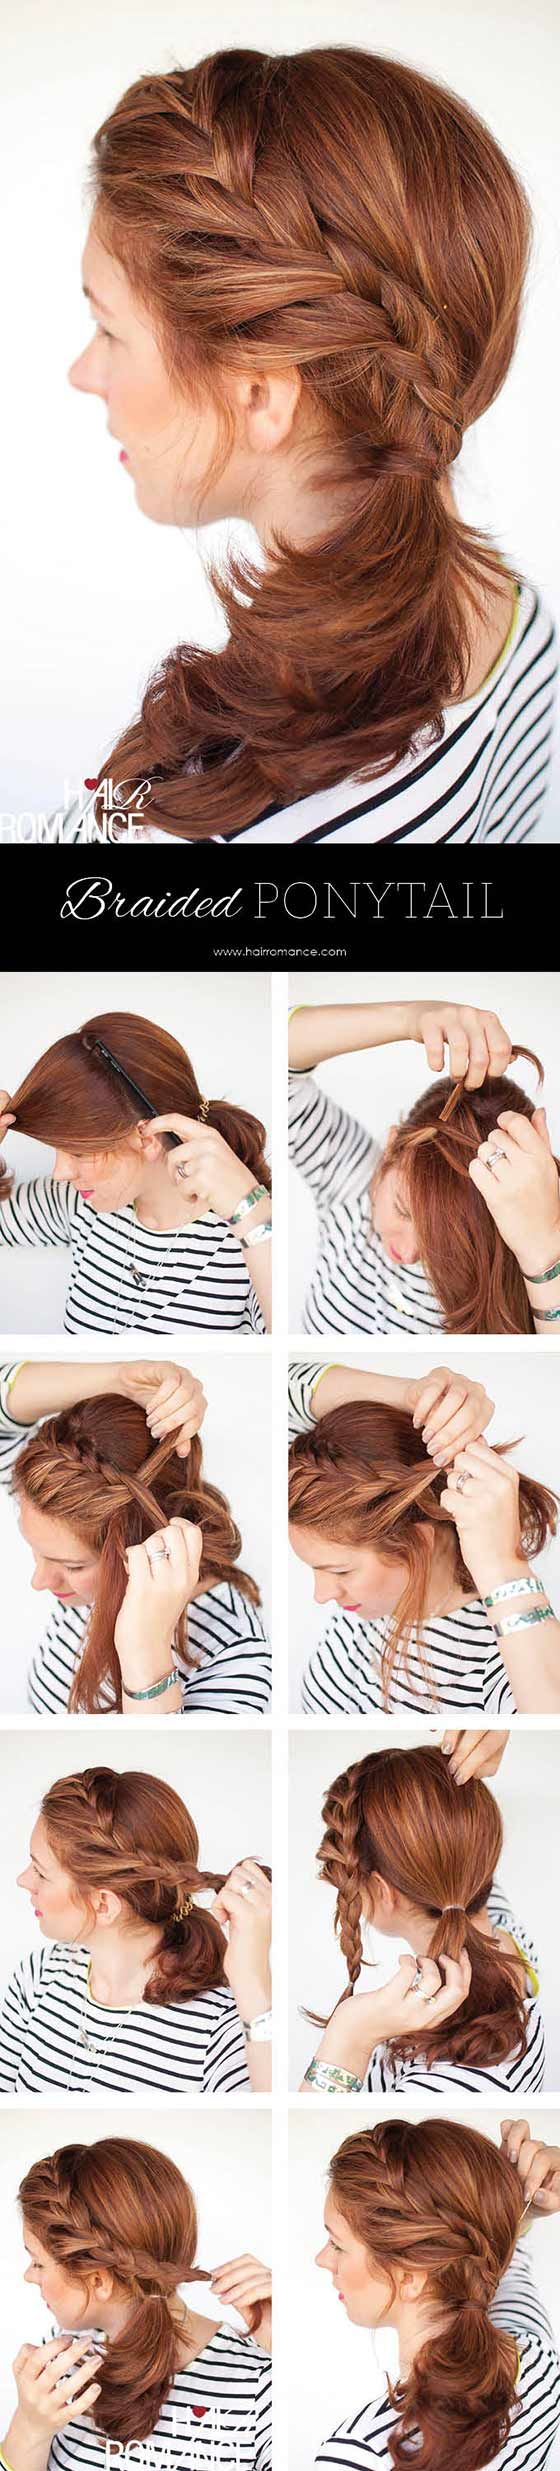 Braided-Headband-Side-Ponytail